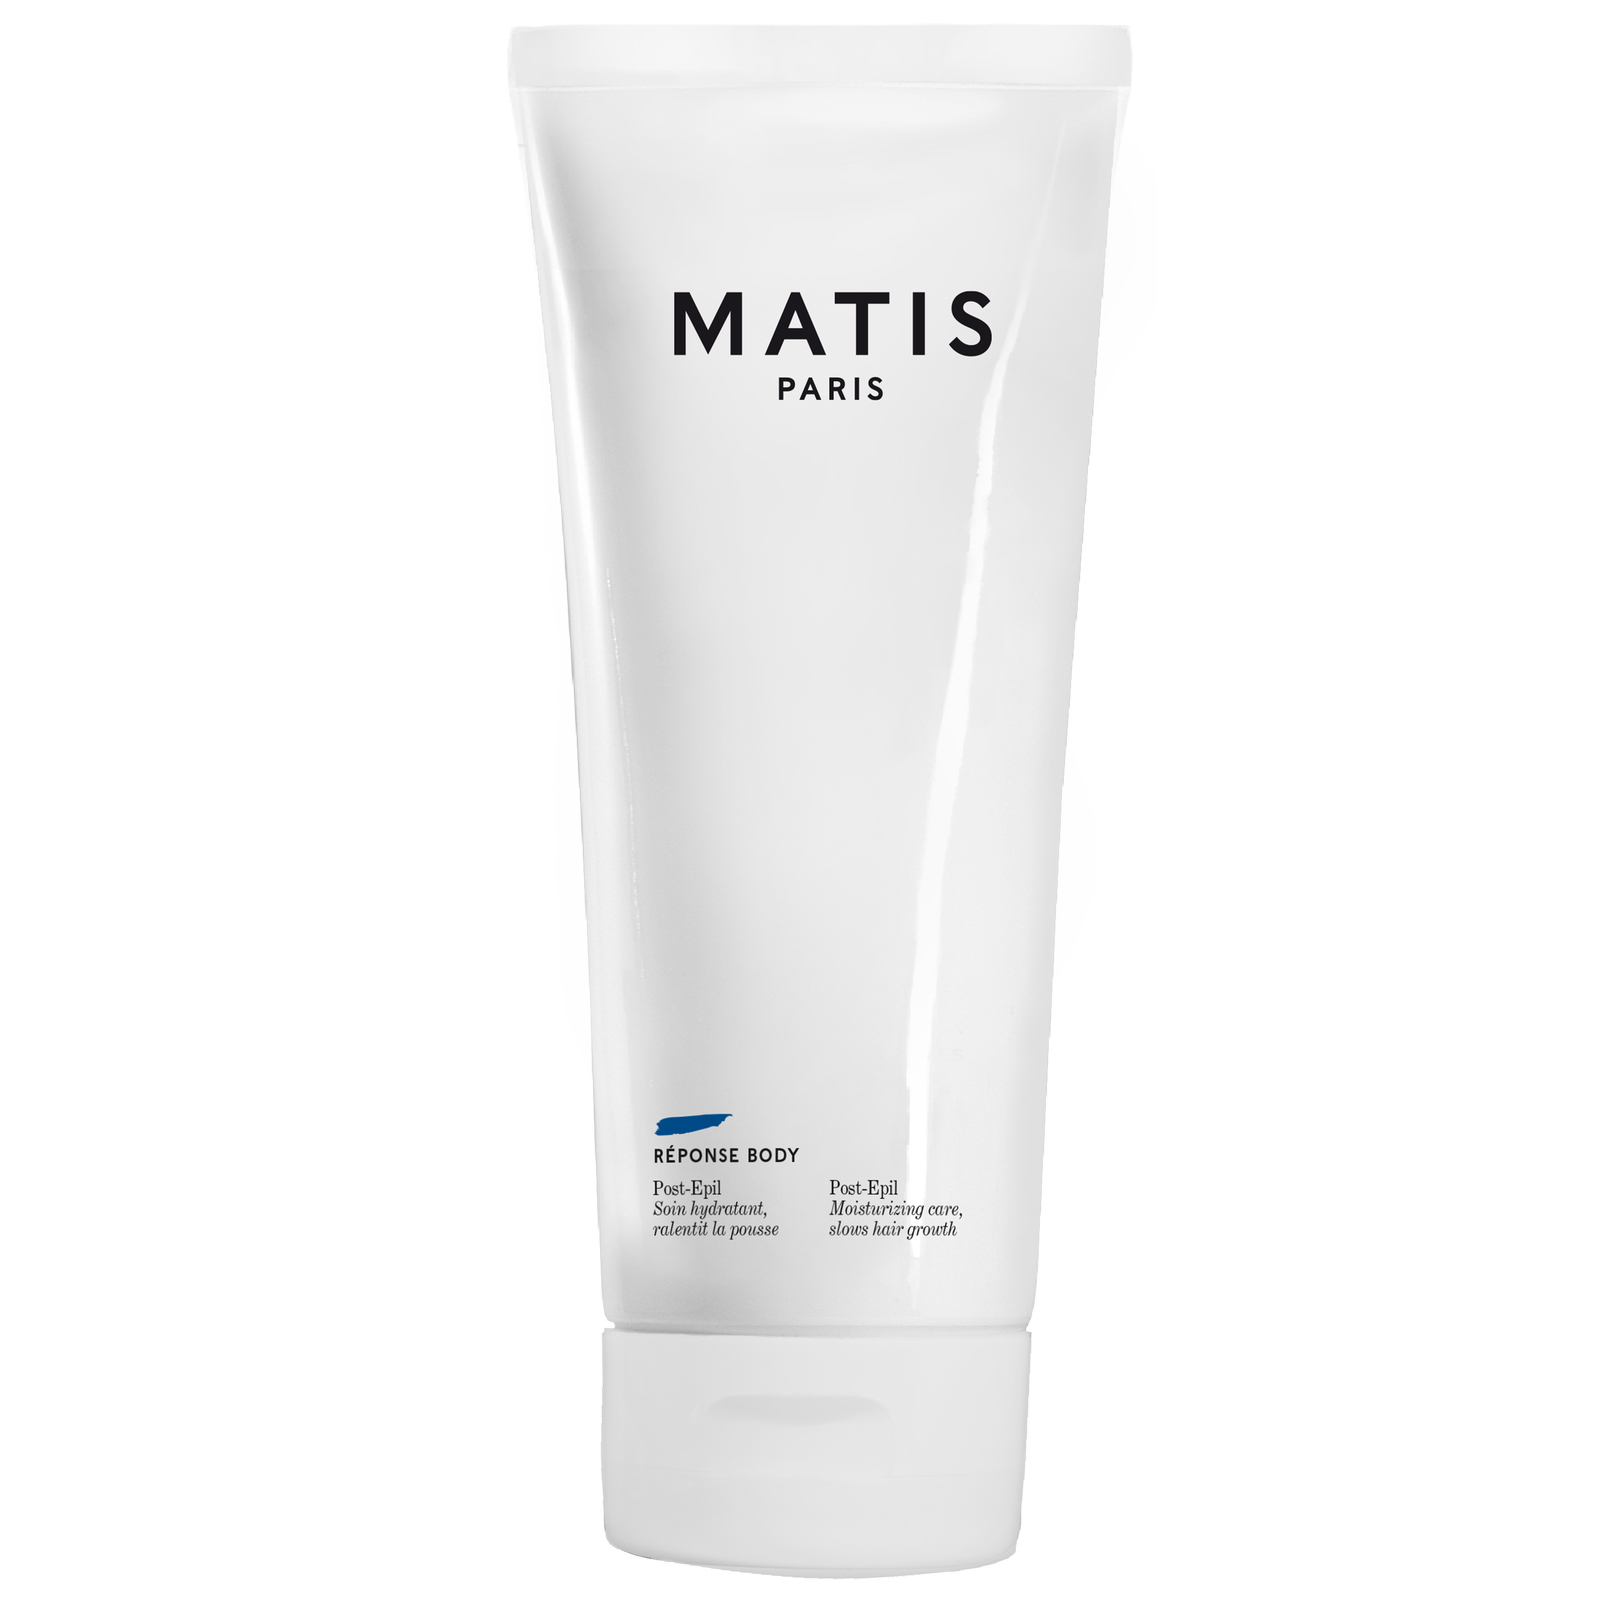 Matis Paris Réponse Body Post-Epil 200ml